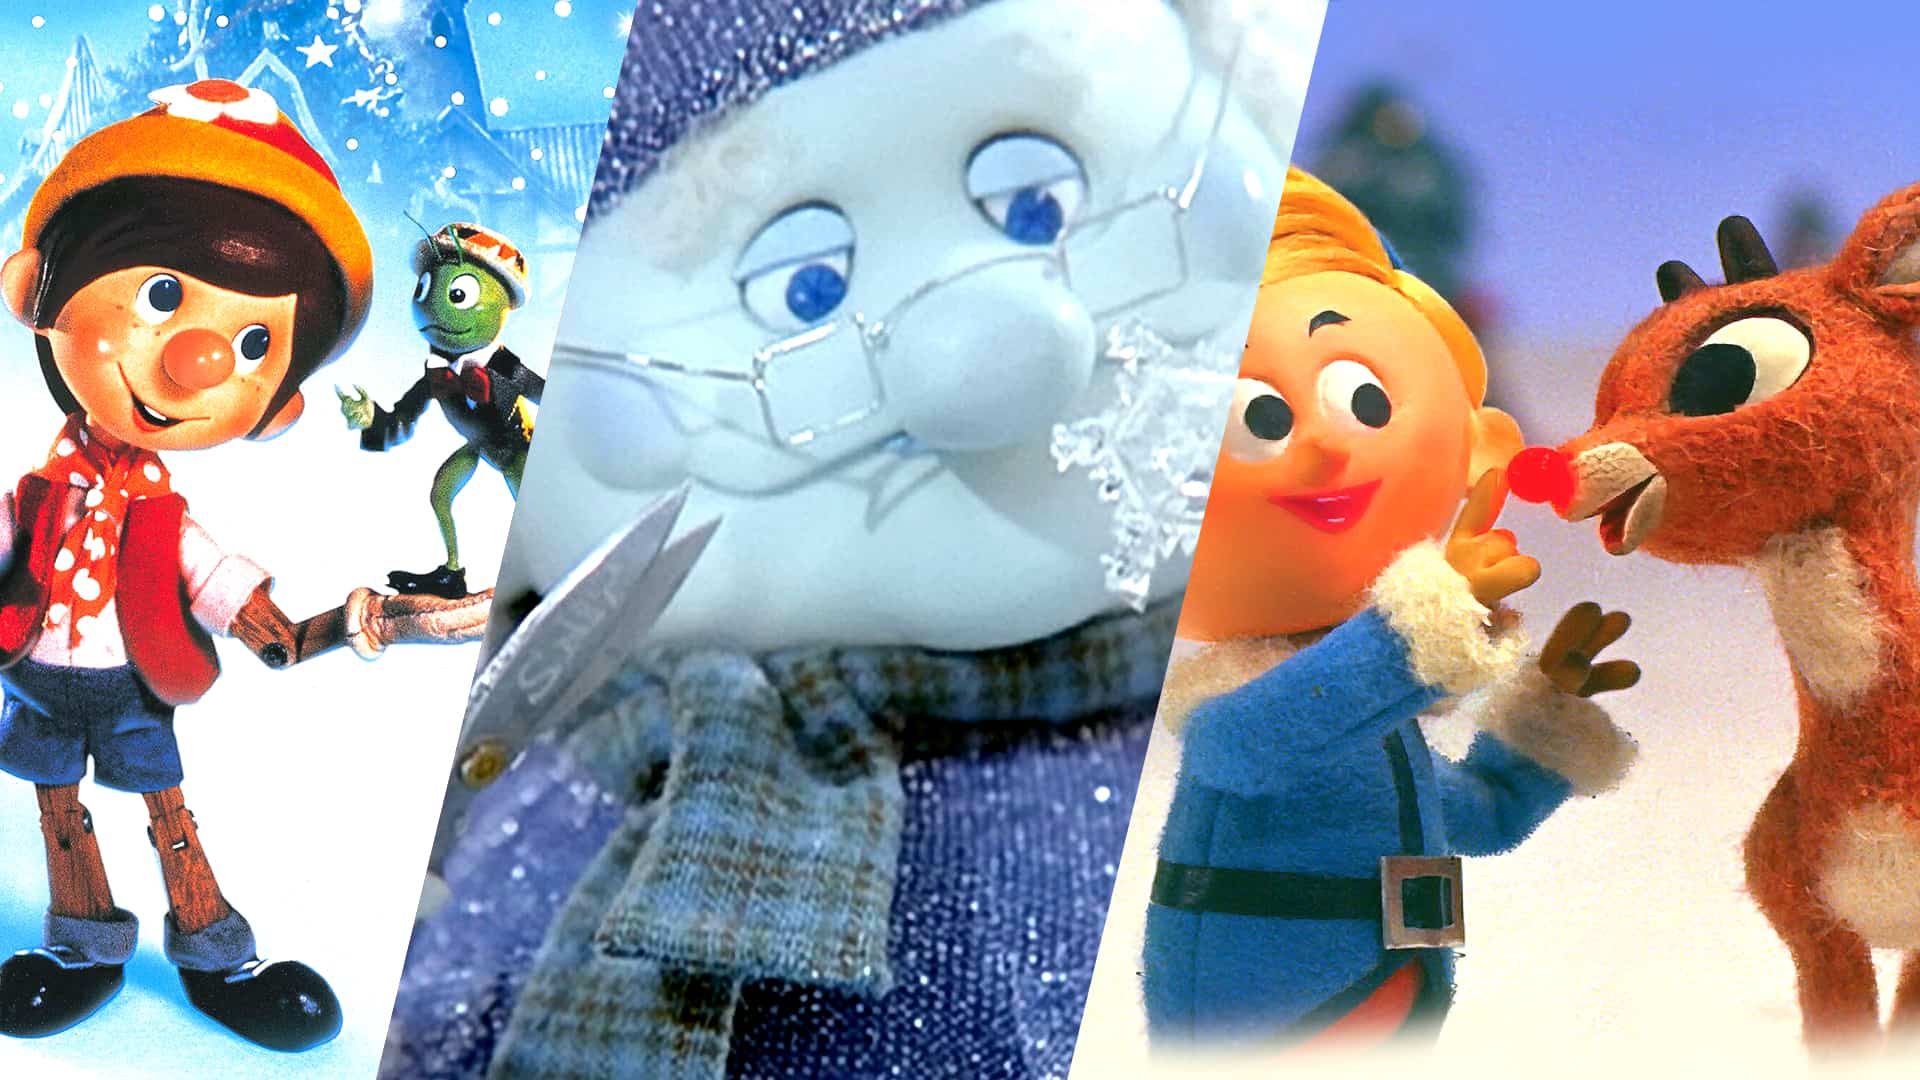 The Definitive List of Rankin Bass Christmas Claymation Movies - Featured - StudioBinder